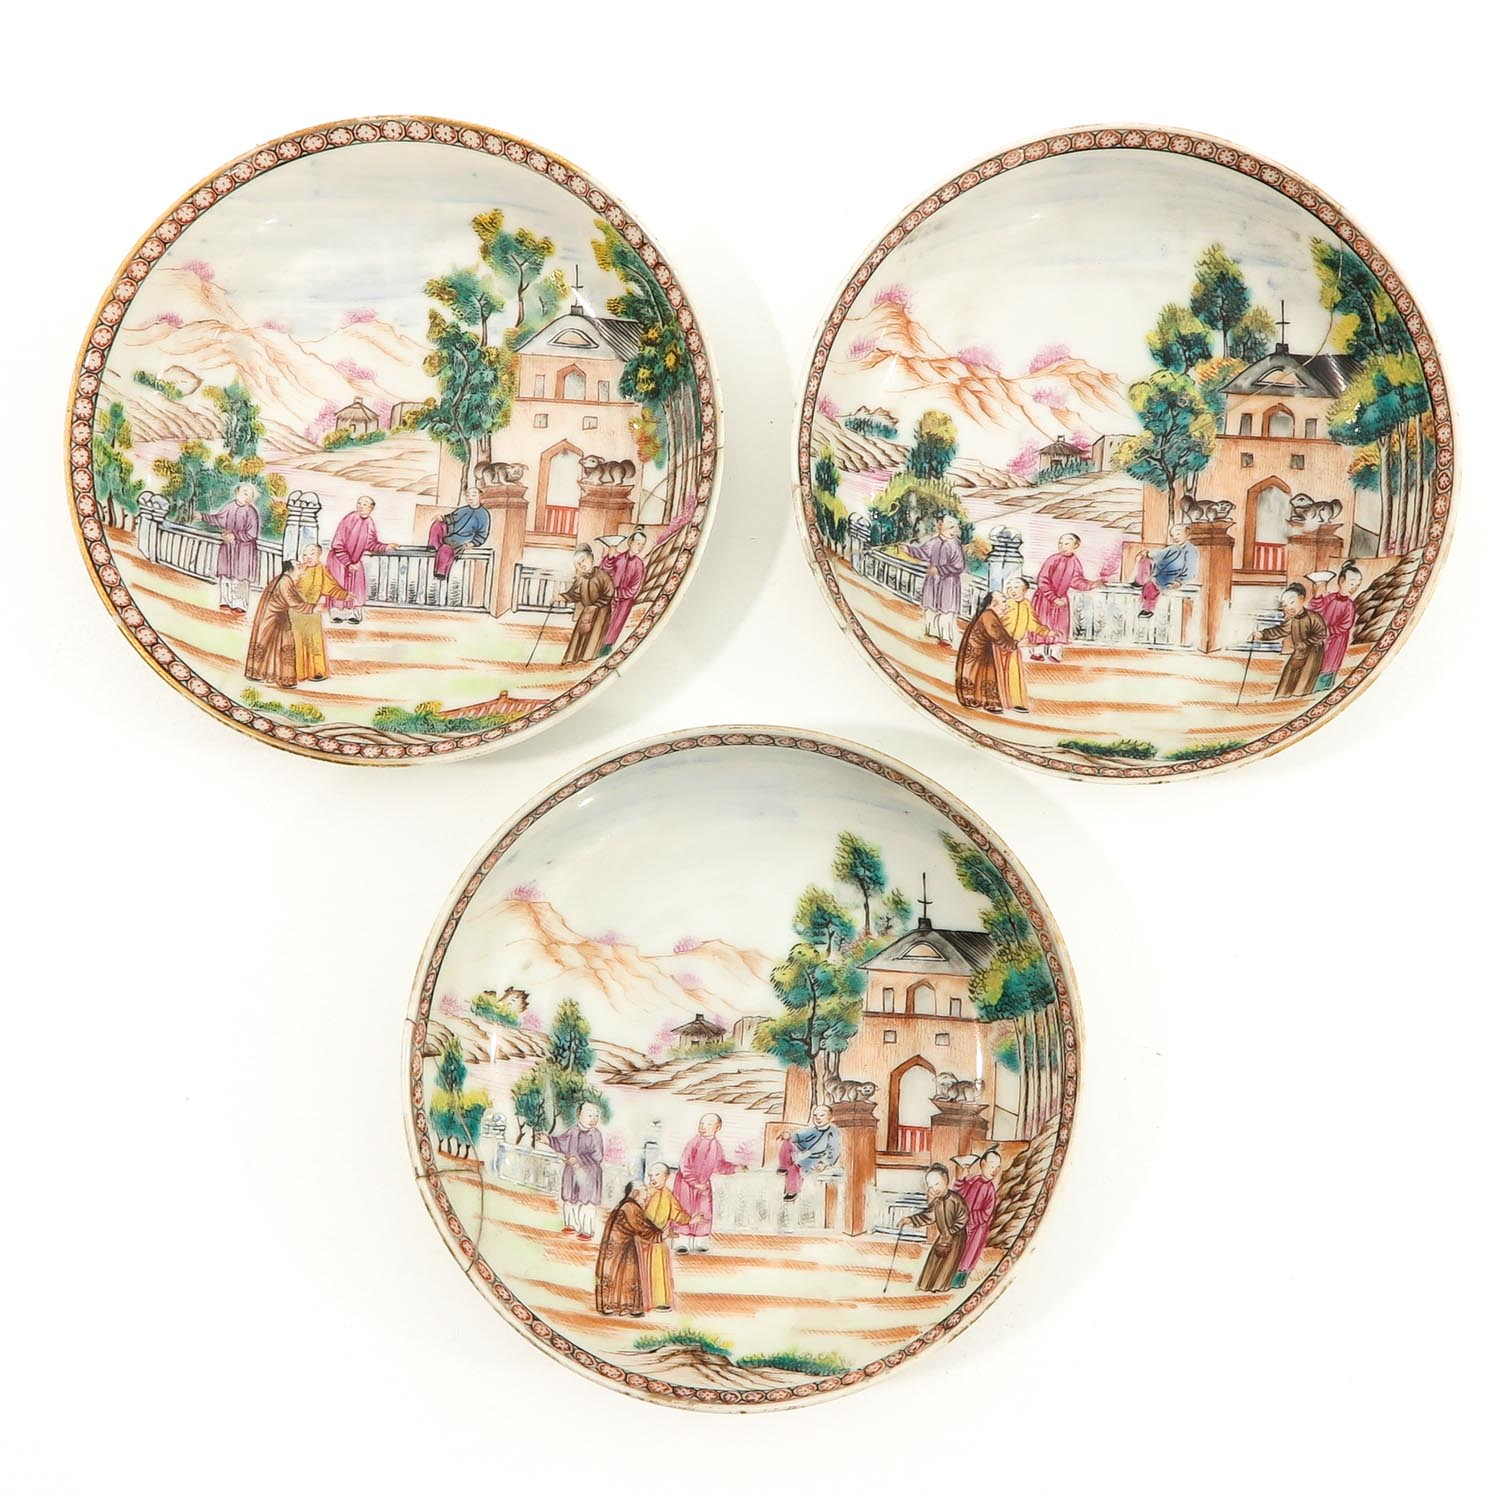 A Series of 3 Cups and Saucers - Image 7 of 10